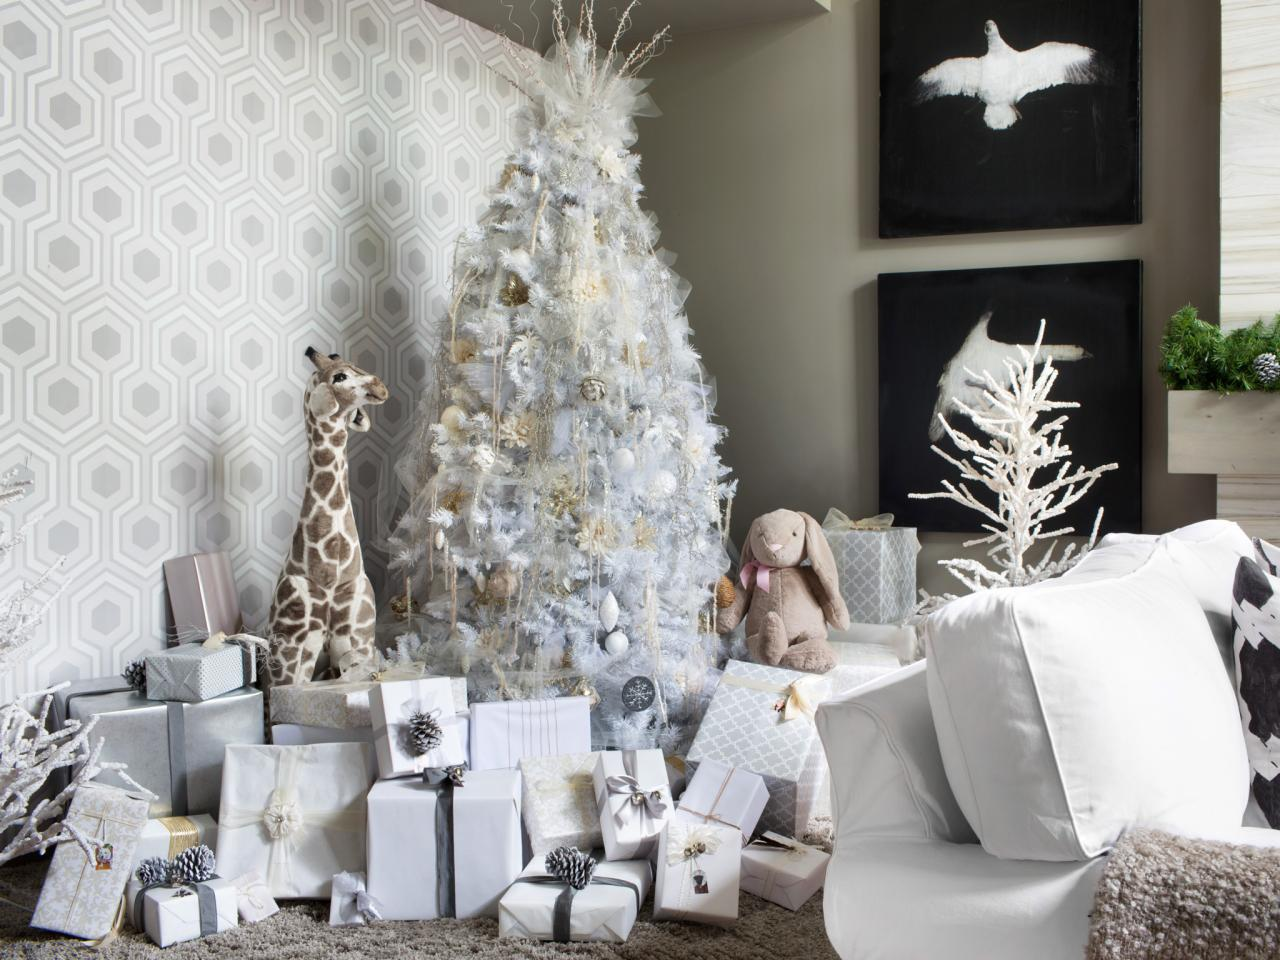 BPF_holiday-house_interior_all_white_christmas_tree_beauty_h.jpg.rend.hgtvcom.1280.960